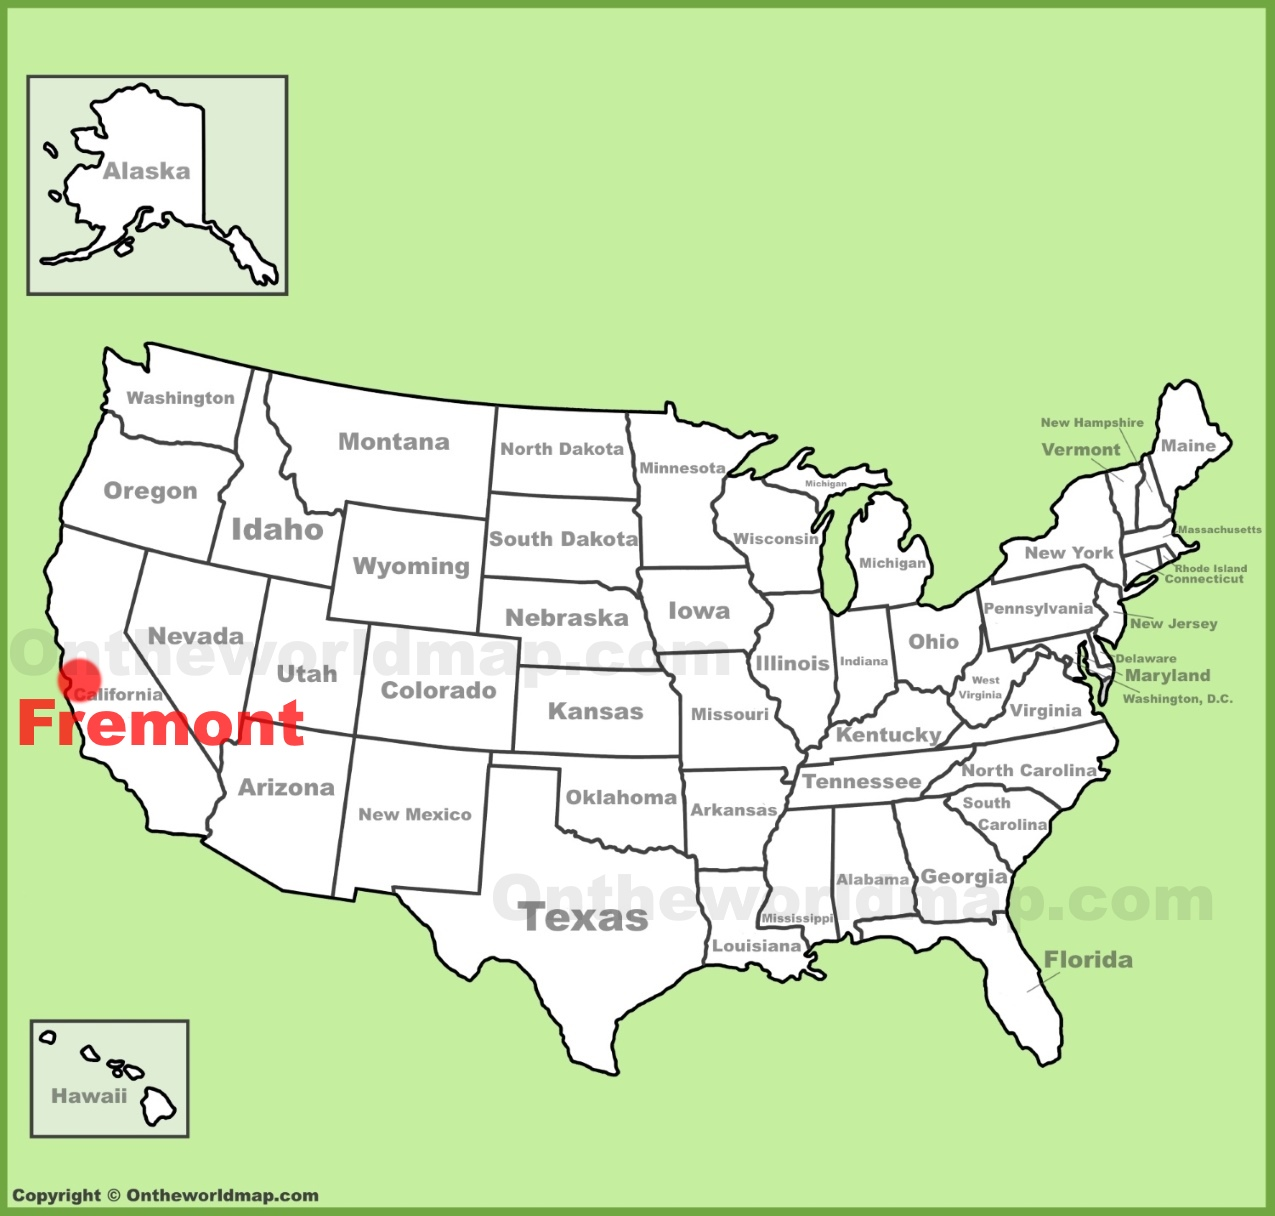 Fremont location on the US Map